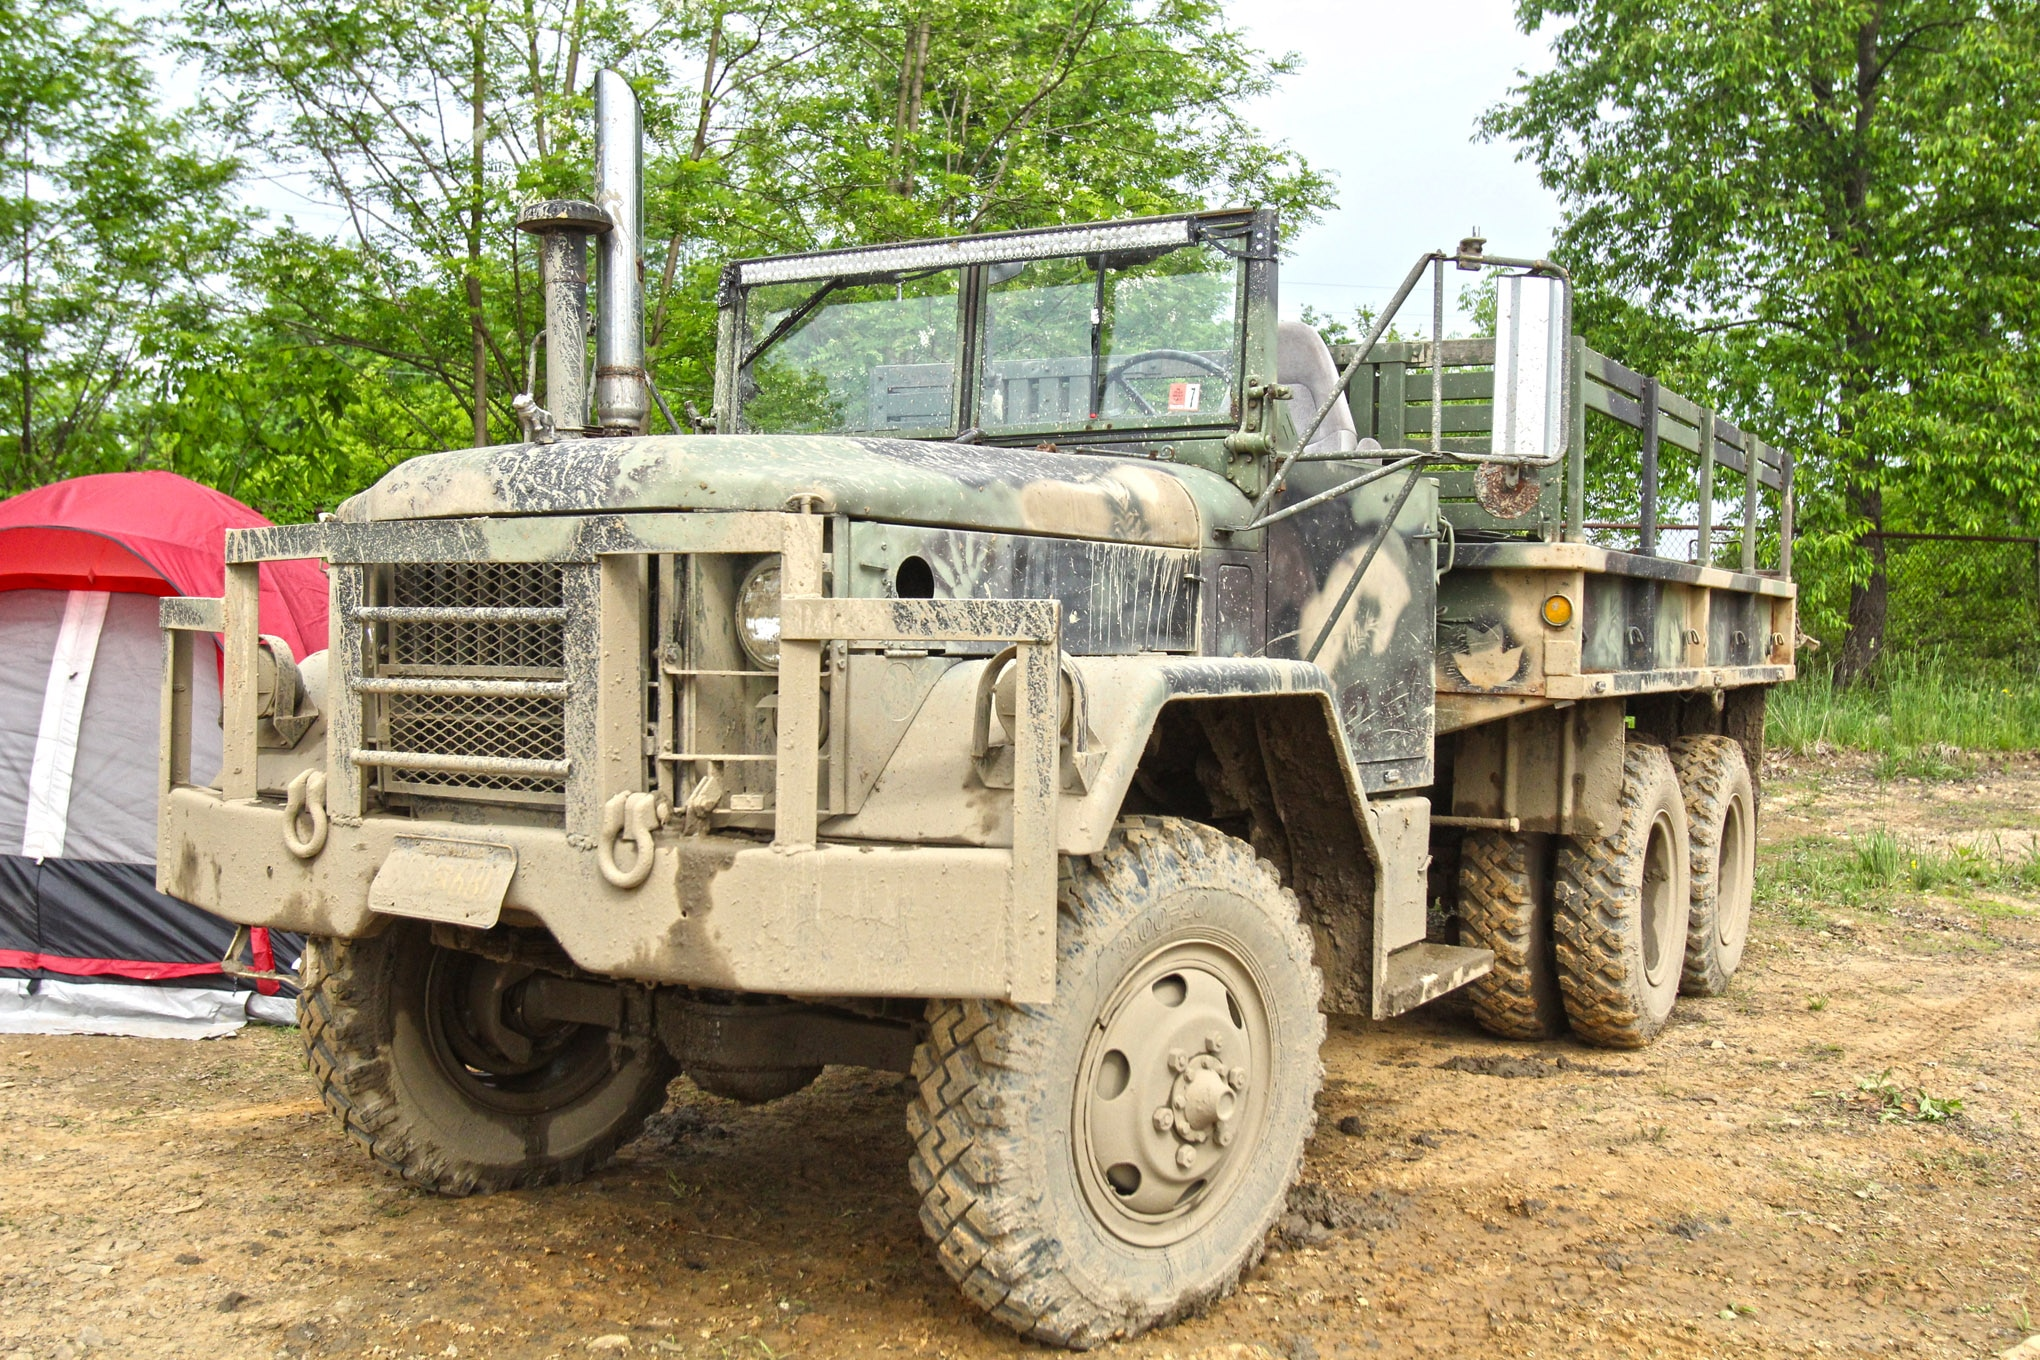 Not only does Dwayne Farrington bring his '71 deuce-and-a-half to the swampin' pits at Yankee Lake, but he daily-drives the rig and has even used it to get around Erie, Pennsylvania, when the roads were flooded.